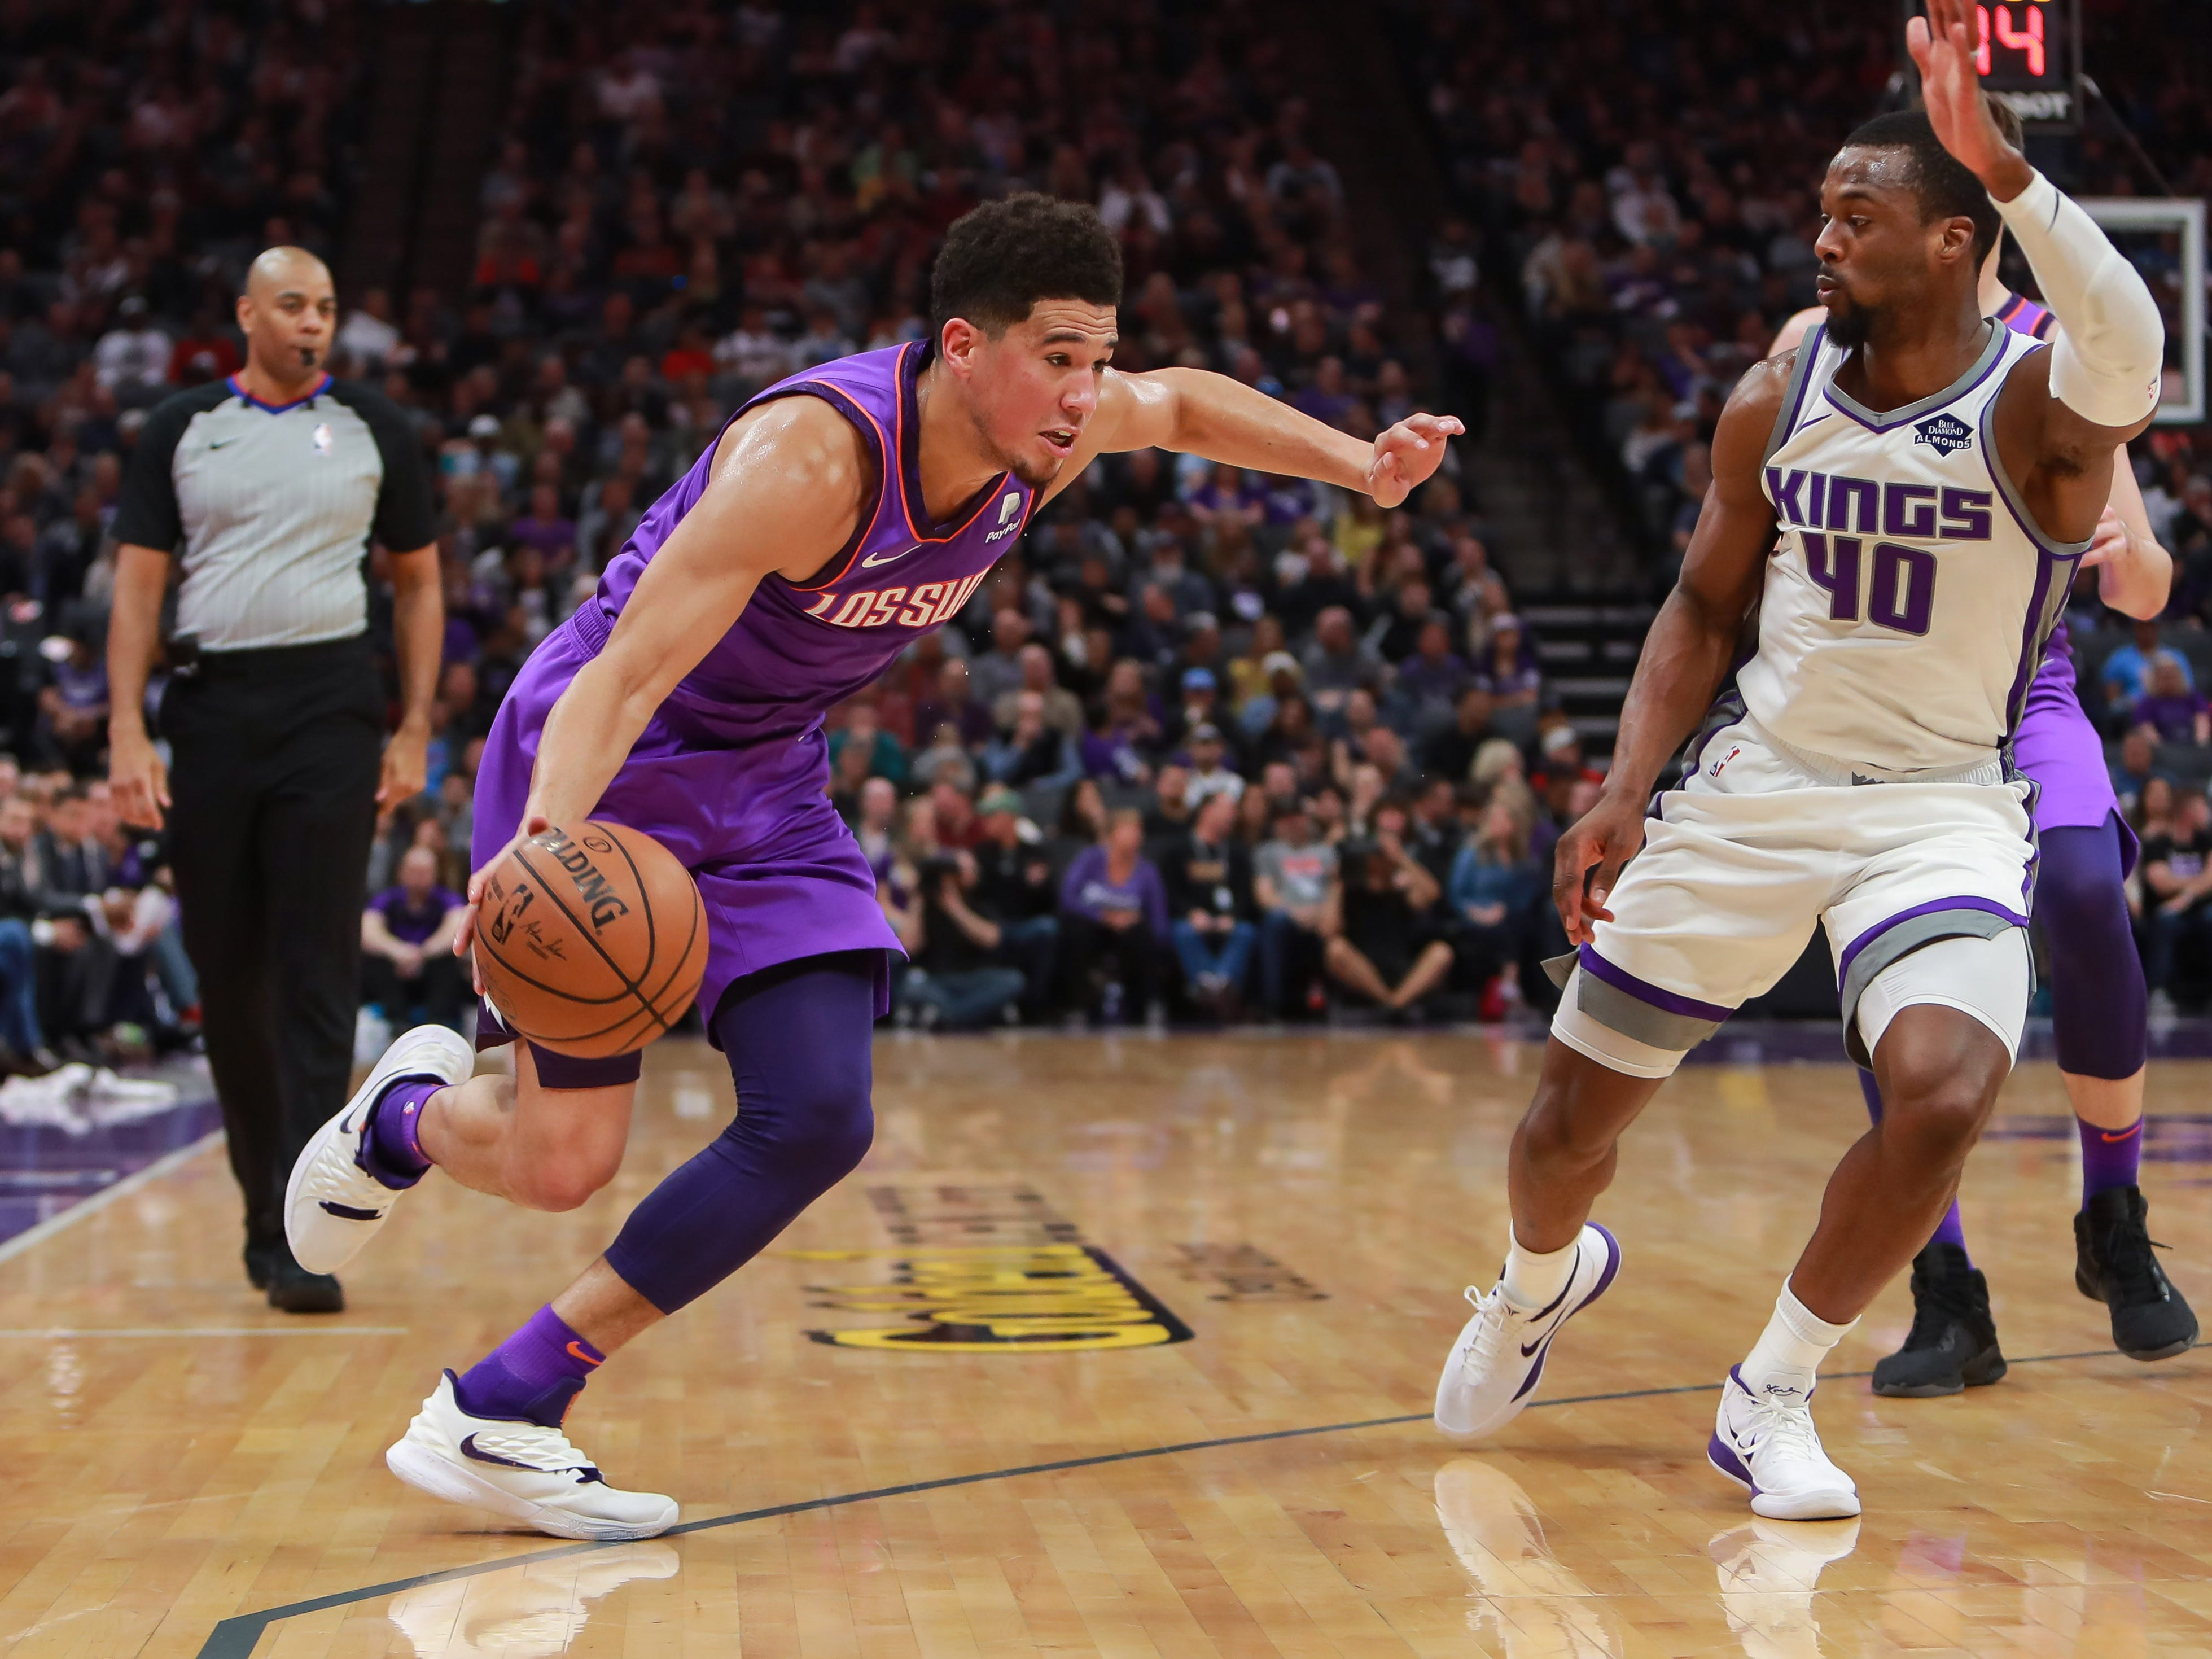 Mar 23, 2019; Sacramento, CA, USA; Phoenix Suns guard Devin Booker (1) dribbles the ball against Sacramento Kings forward Harrison Barnes (40) during the first quarter at Golden 1 Center.